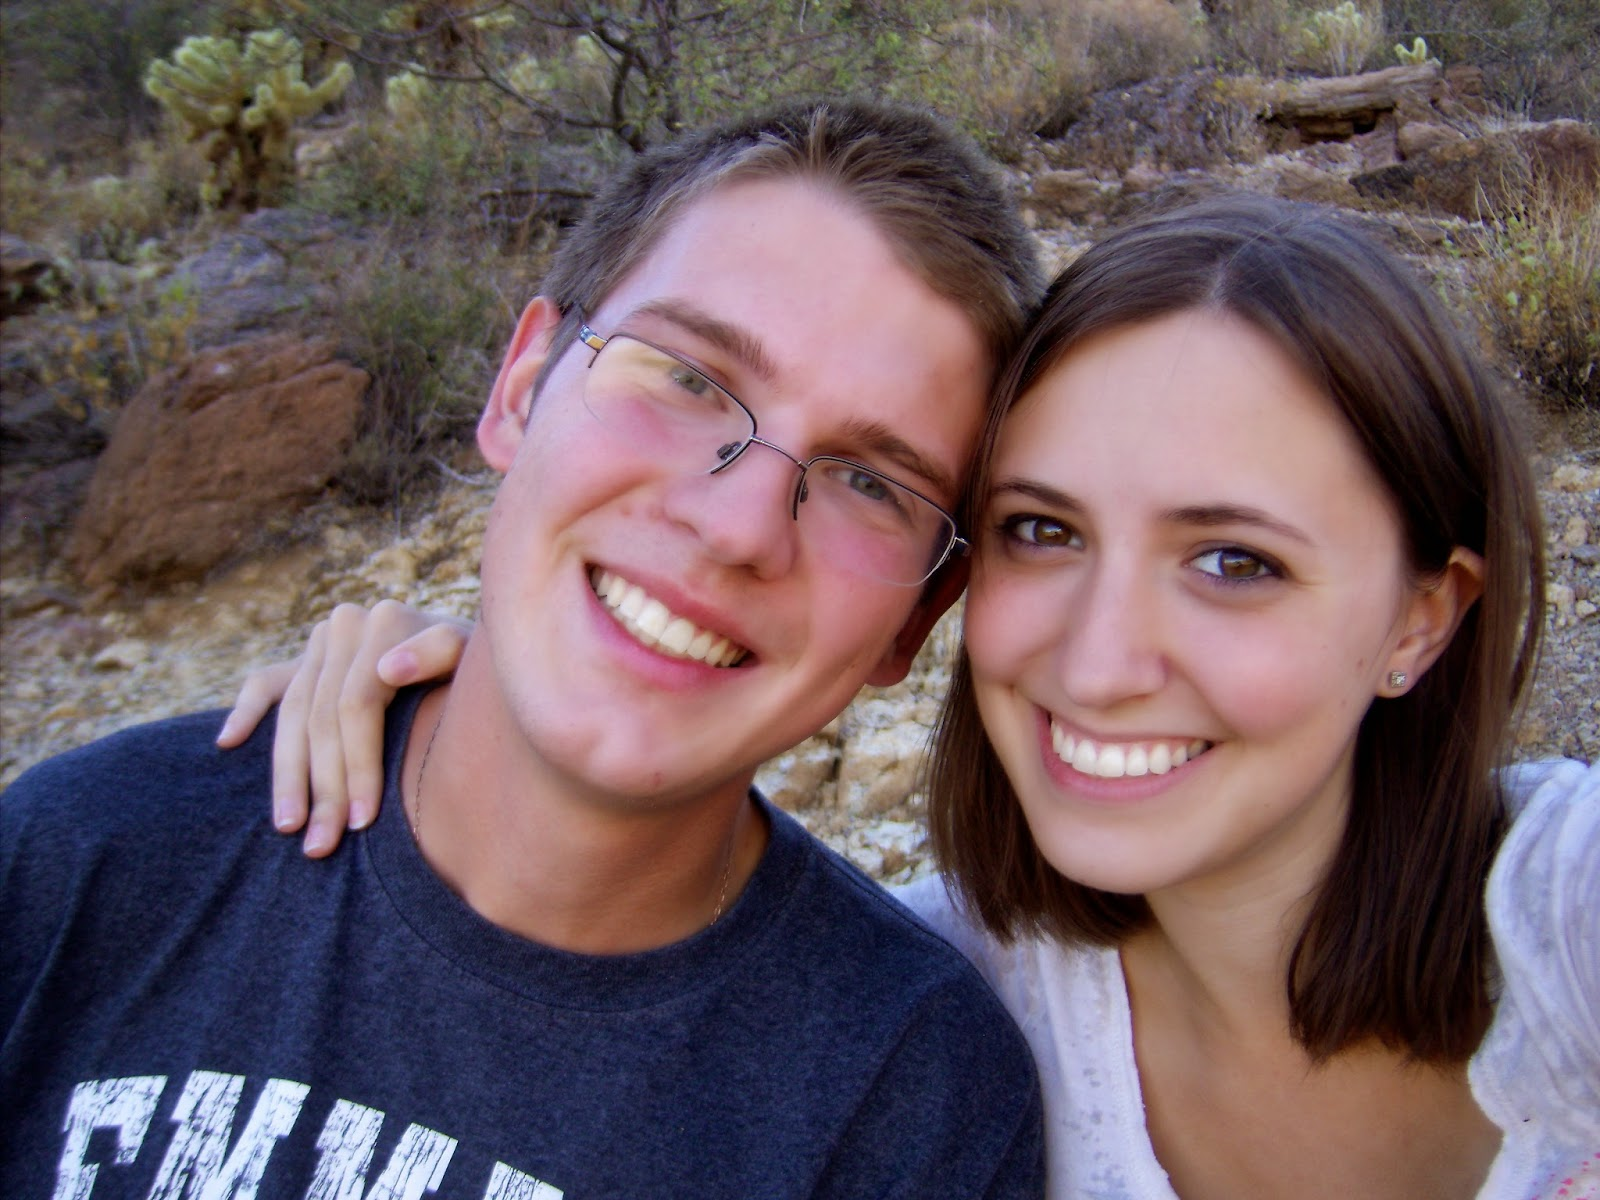 curtis and i in tucson mountain park